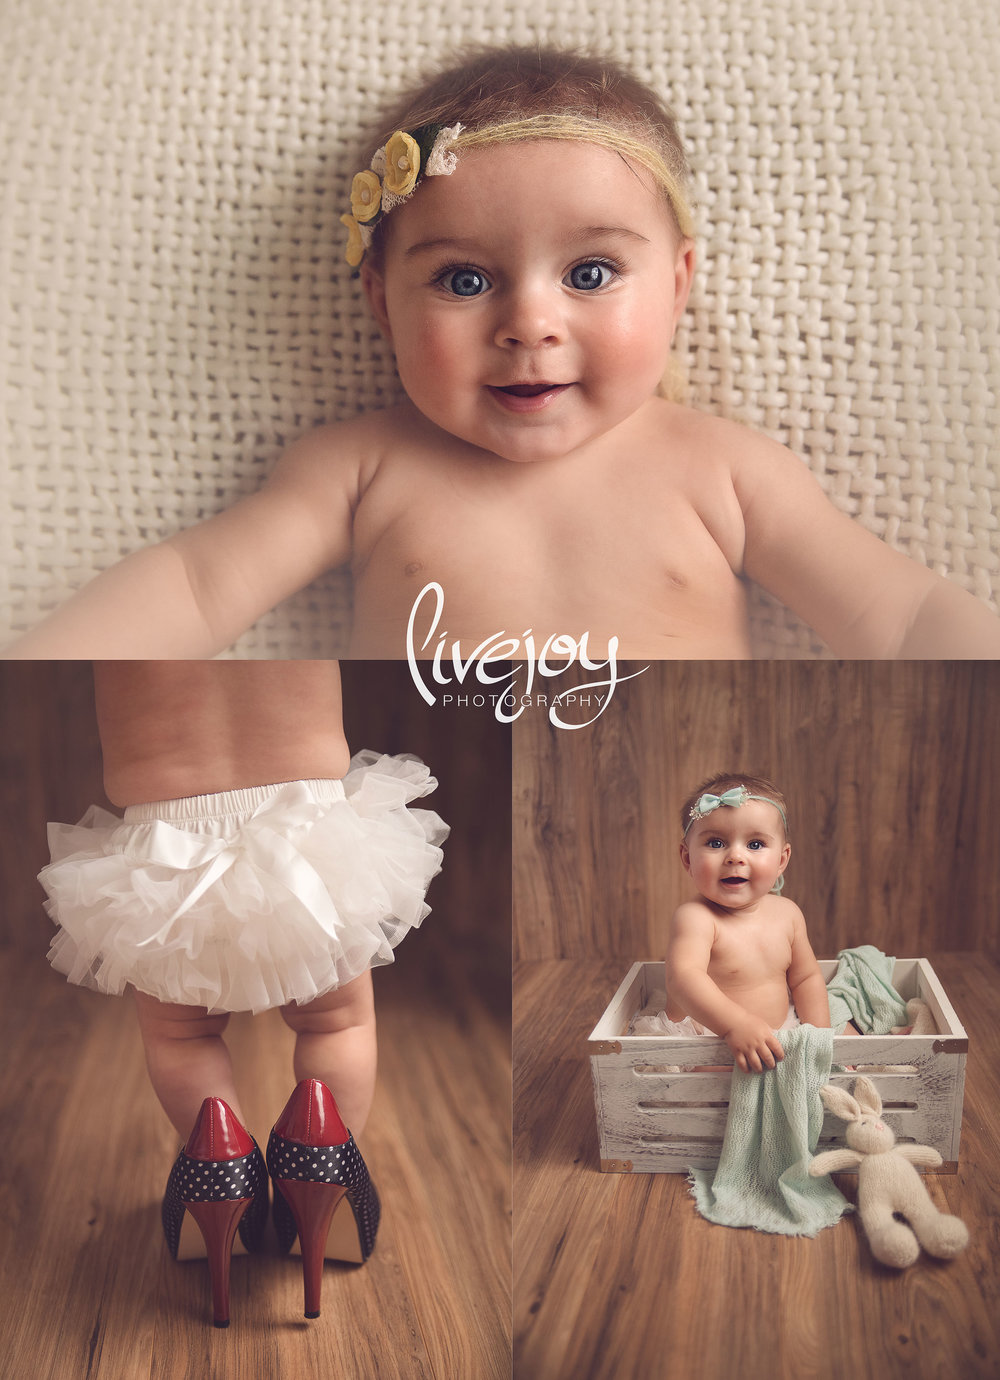 Six Month Photos Studio - Oregon | LiveJoy Photography